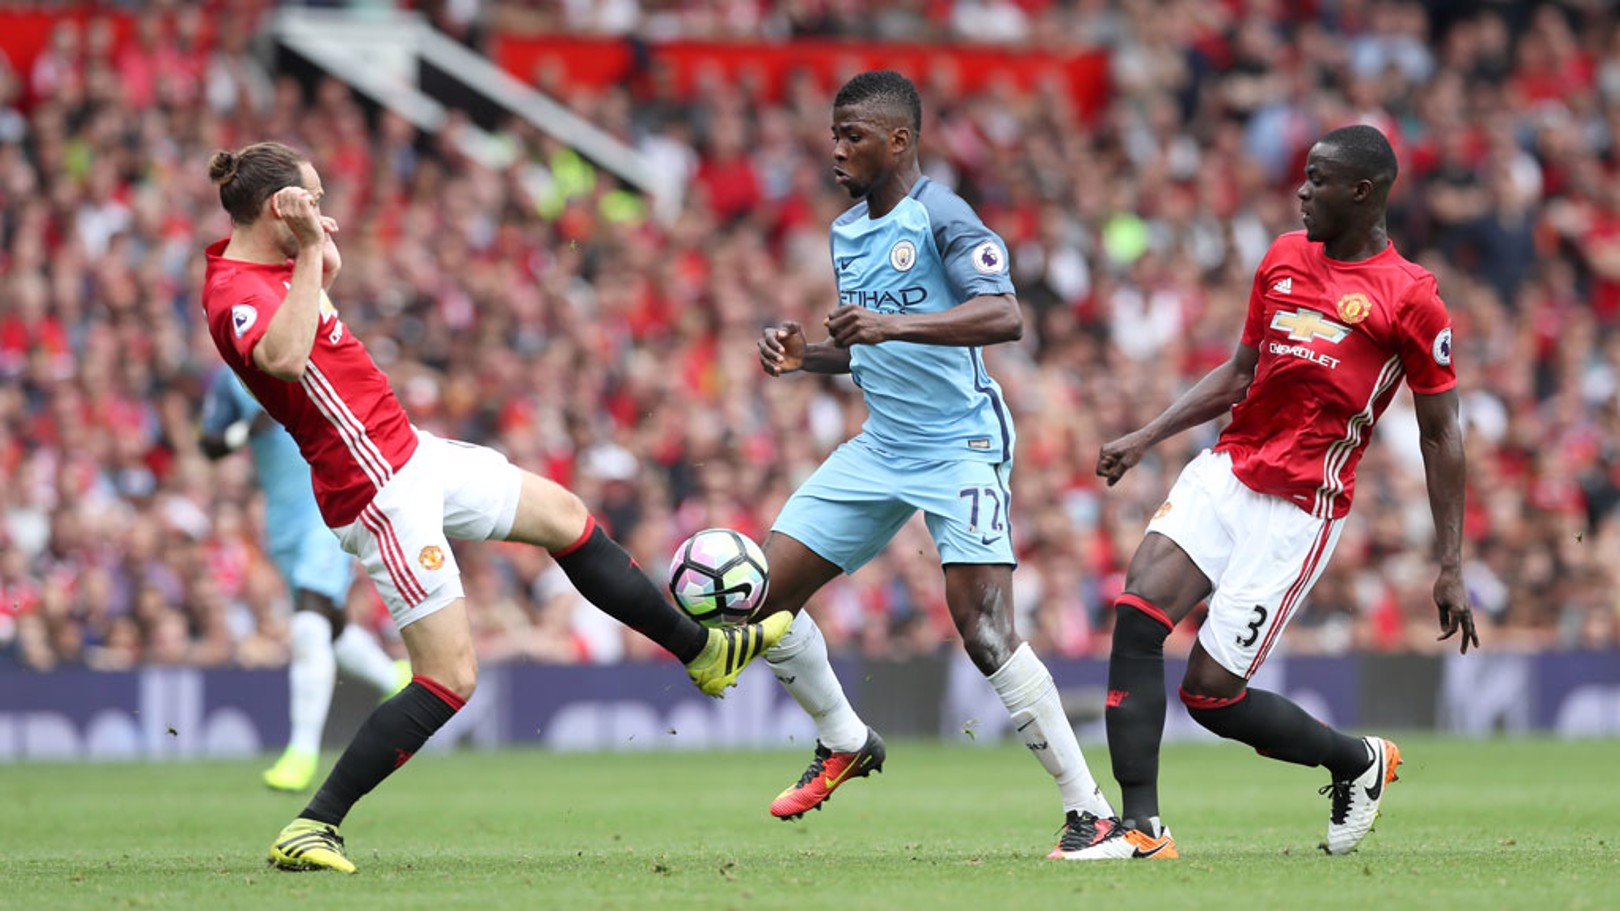 KELECHI IHEANACHO: On the ball